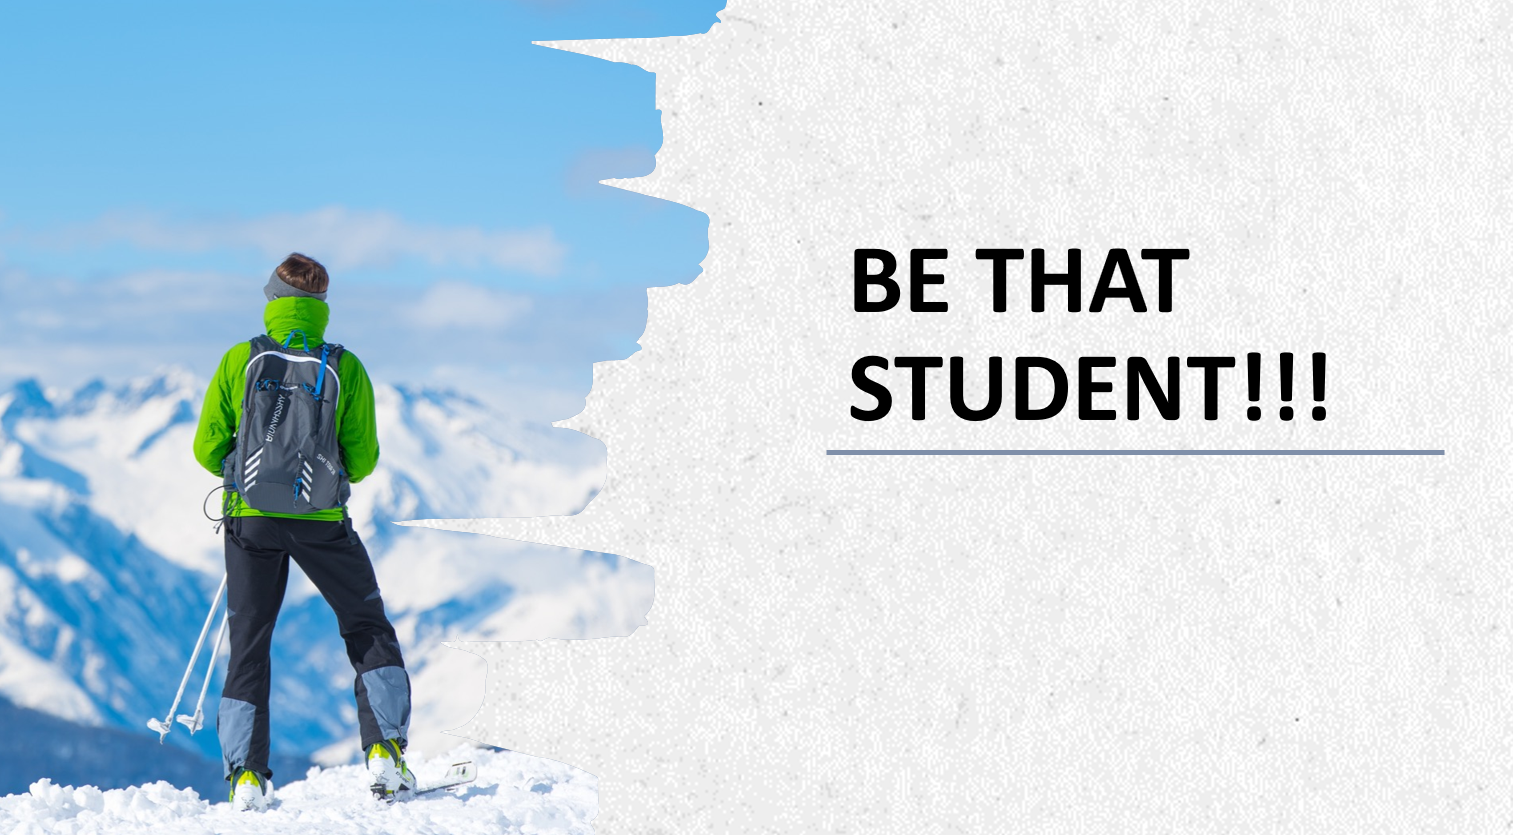 BE THAT STUDENT!!!